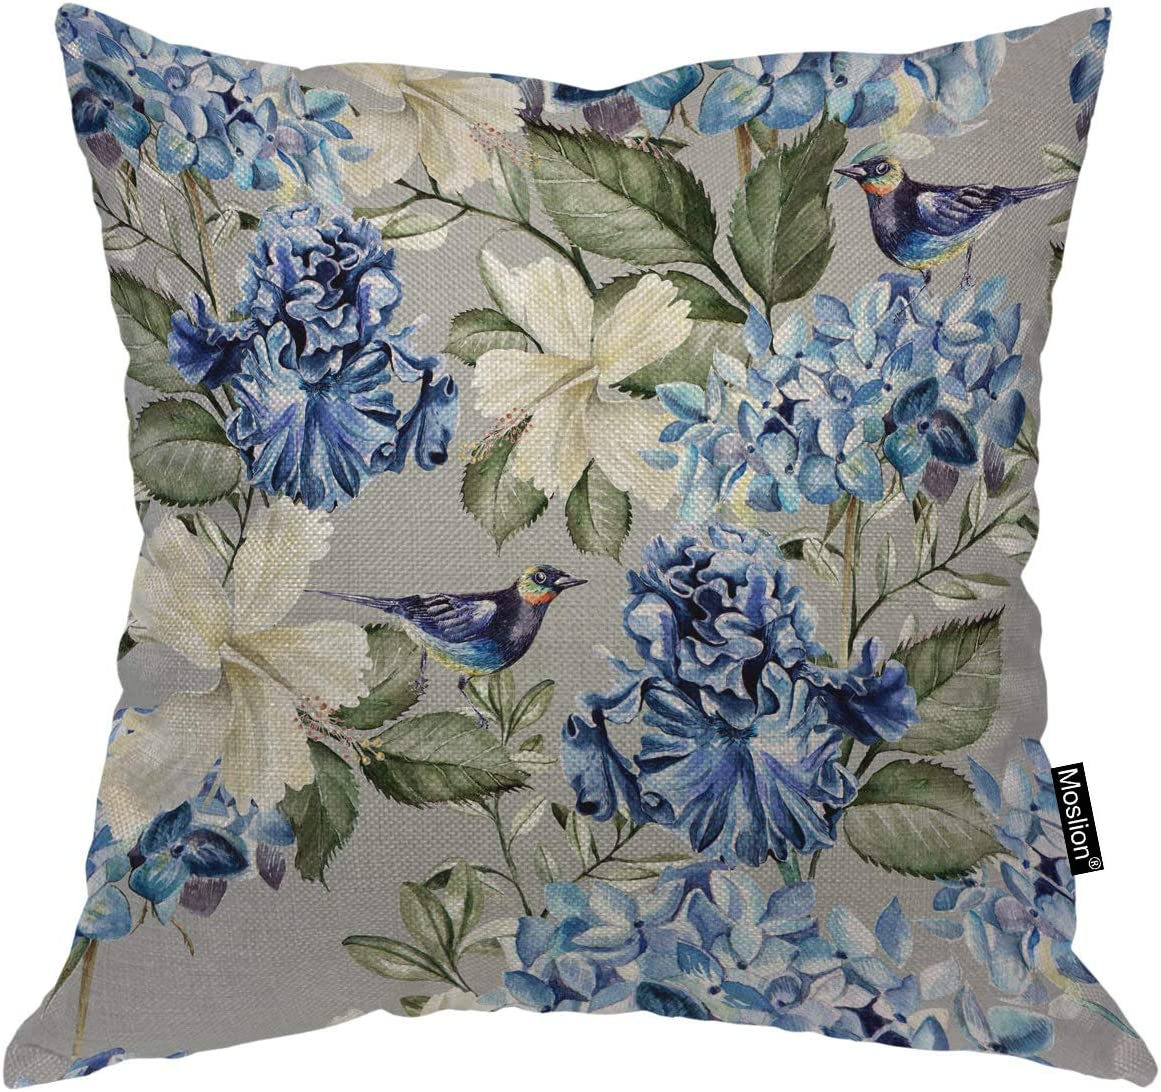 Moslion Floral Decorative Max 53% OFF Pillow Elegant Covers Plant Inch Spring 16x16